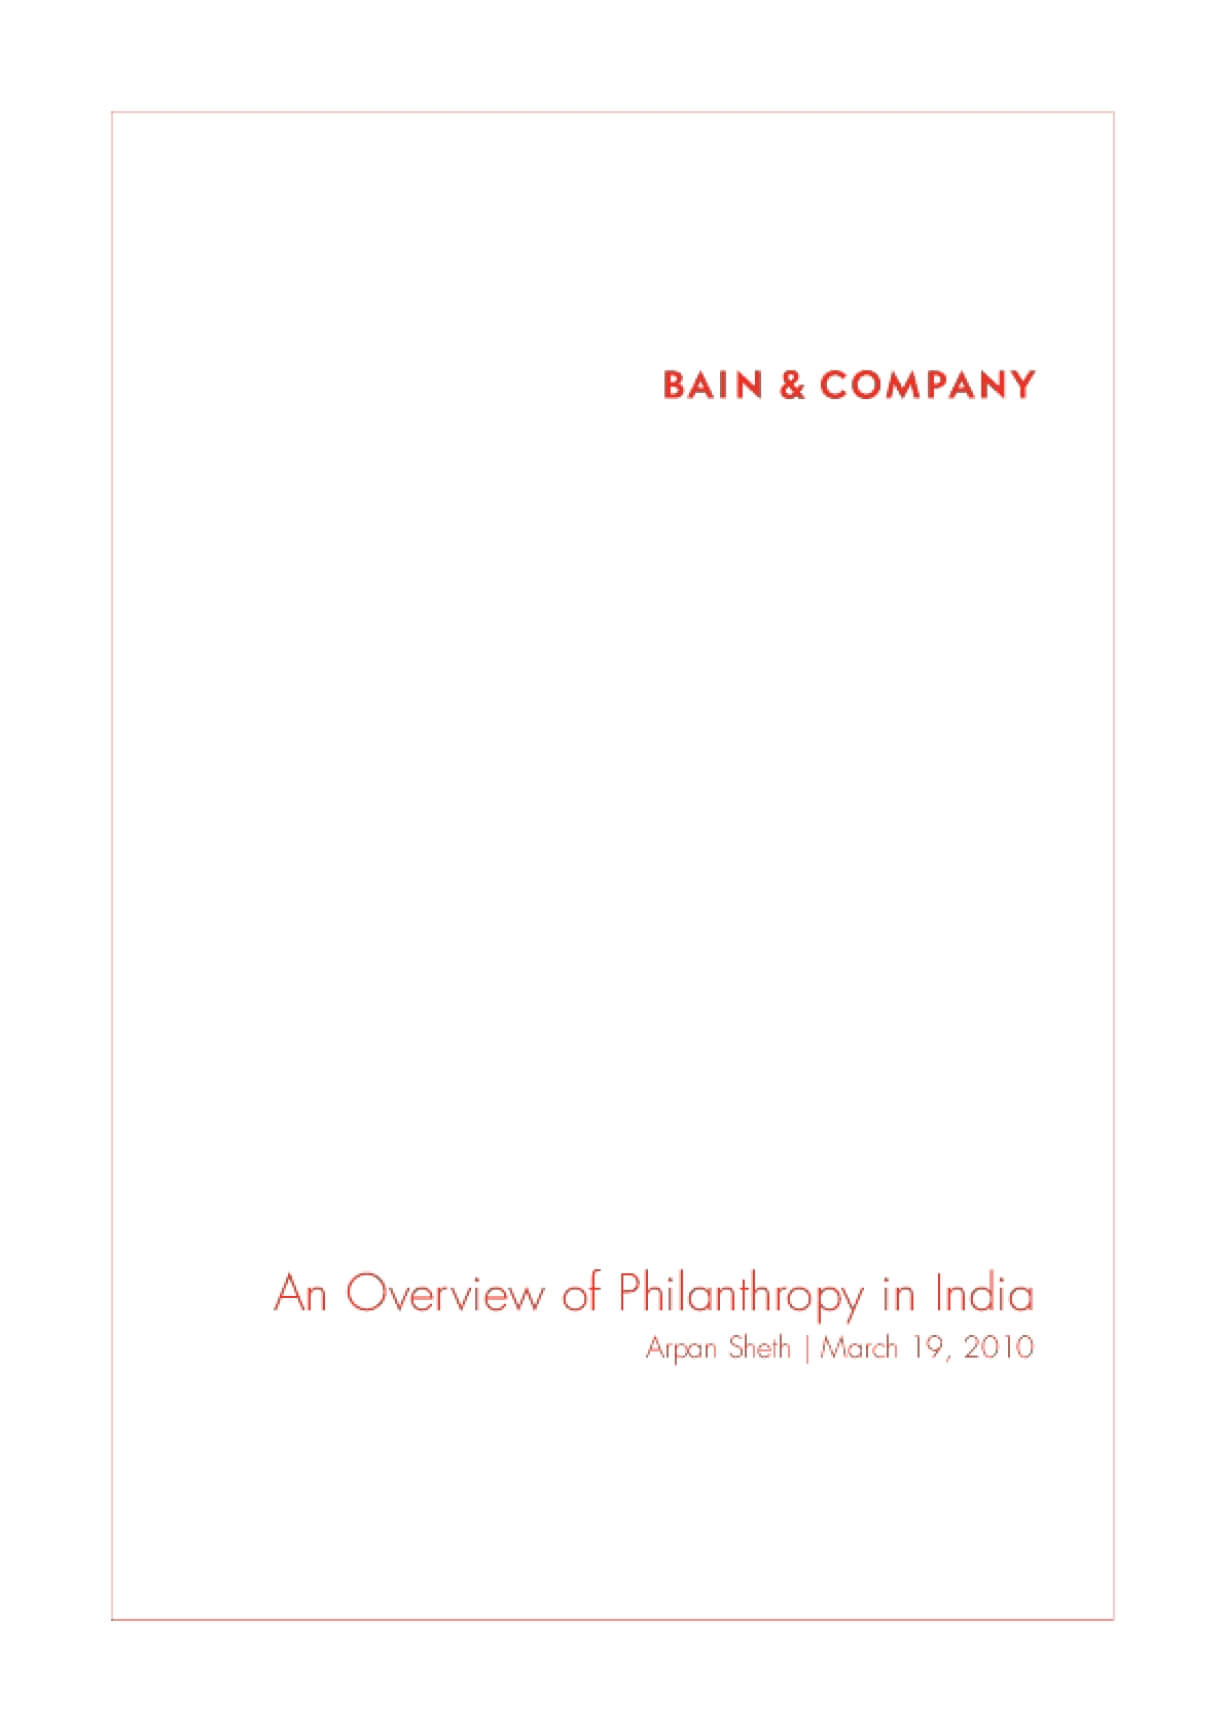 An Overview of Philanthropy in India